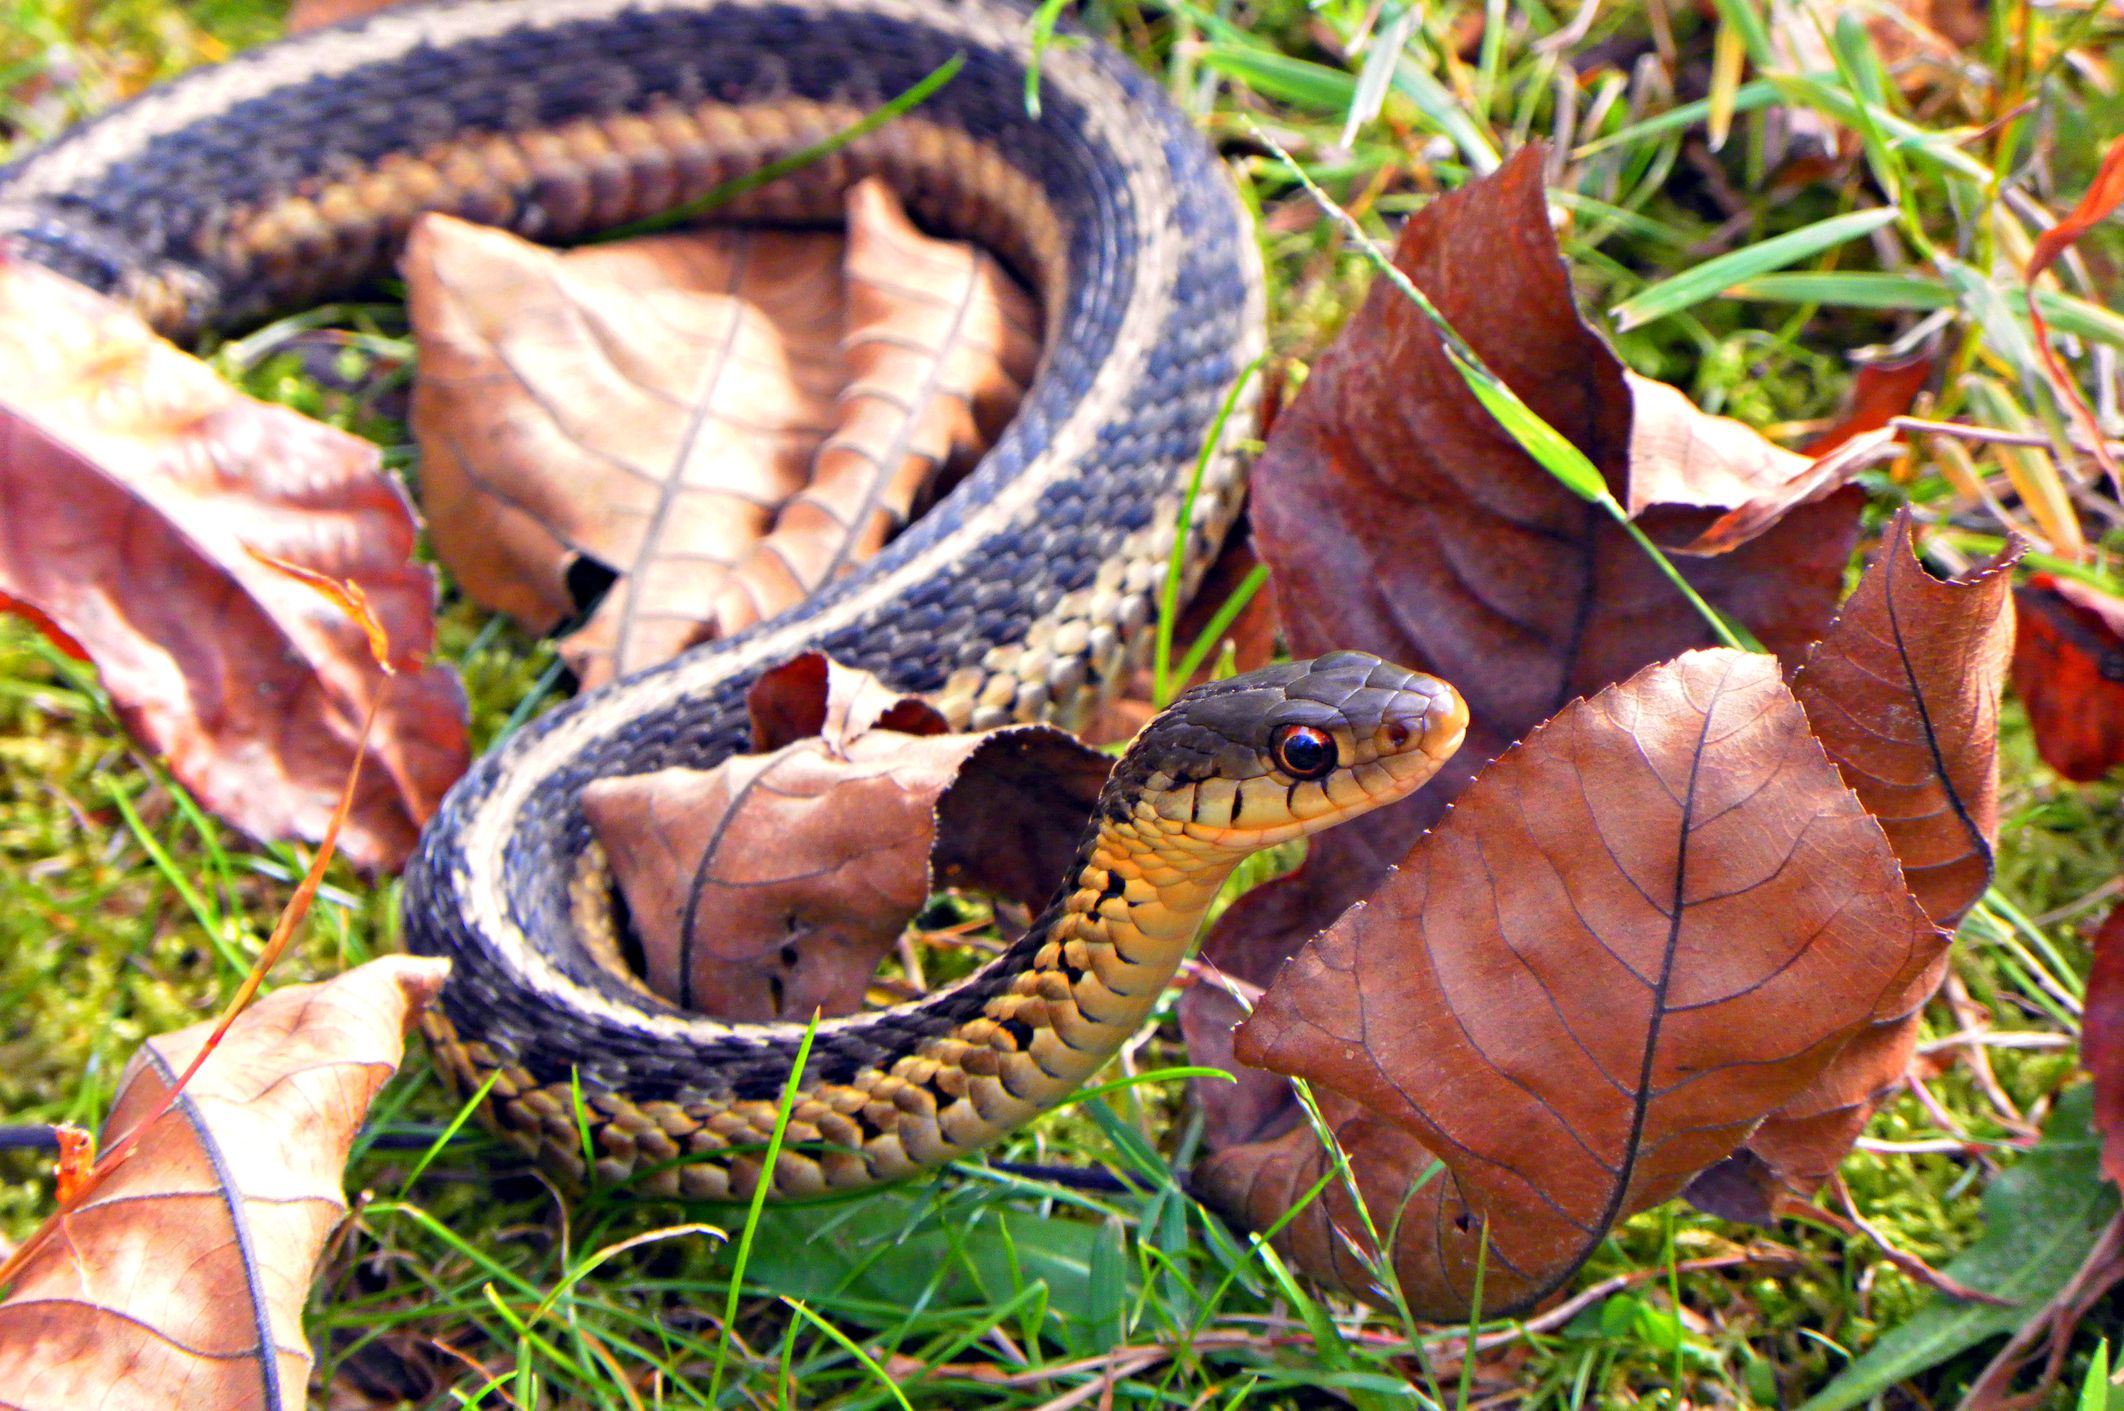 How to Get Rid of Snakes, From Copperhead to Garden